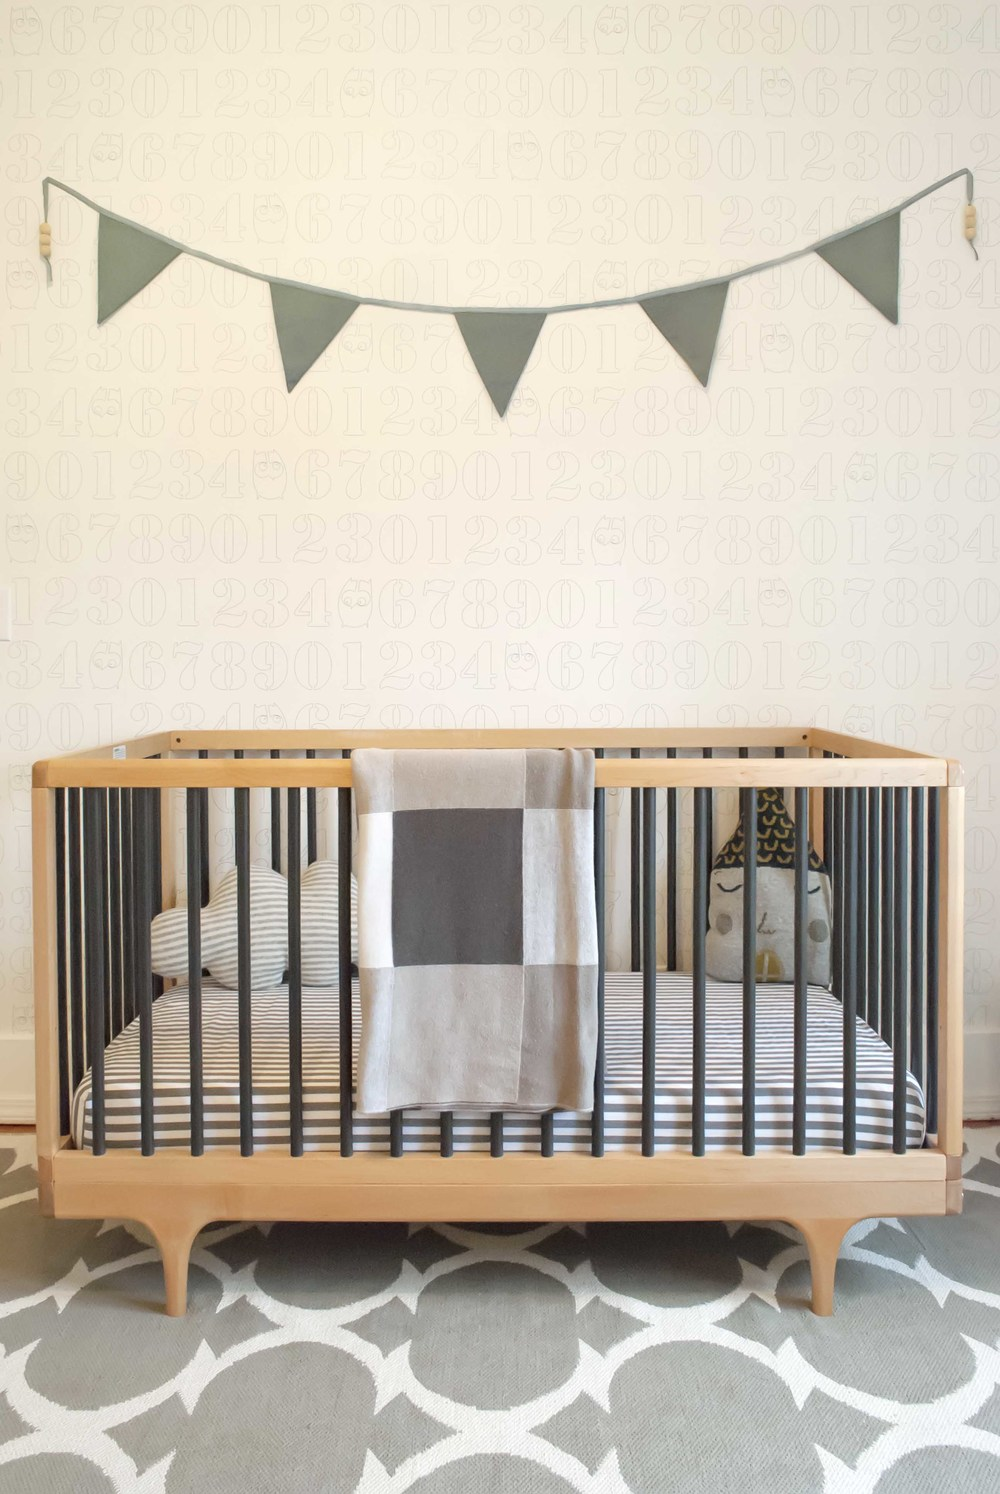 Kalon Studios crib in baby boy nursery